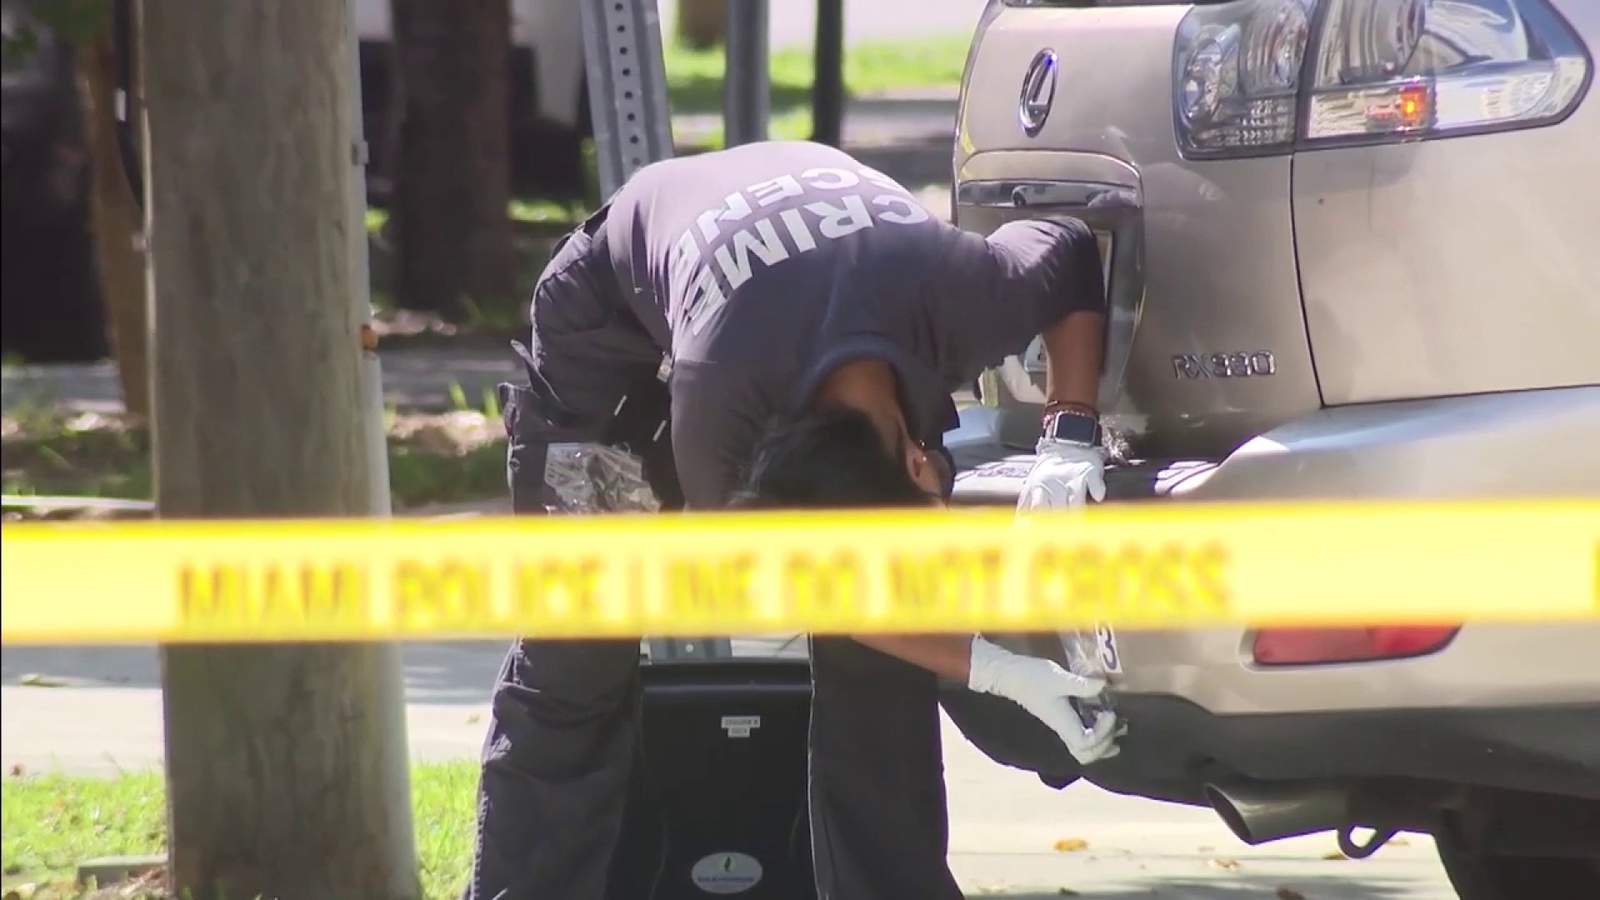 Man found shot in SUV in front of Brickell building